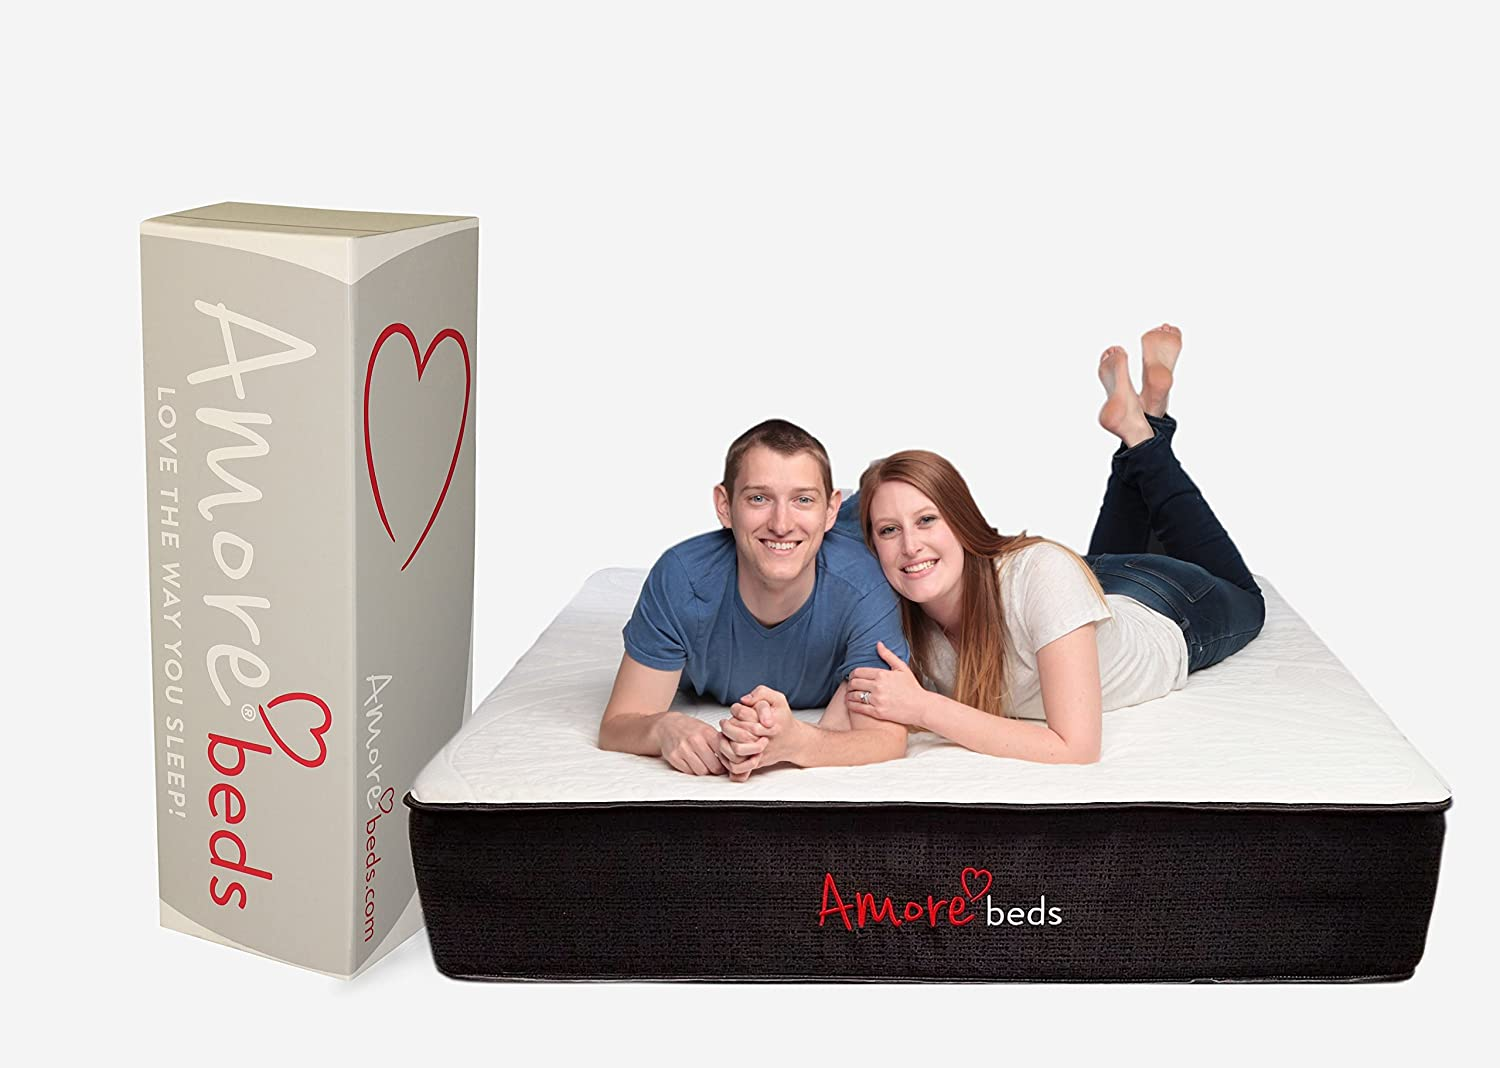 Amazon.com: Amore Beds Copper-Ion Infused Best Hybrid Mattress (Medium/Firm, Queen): Kitchen & Dining